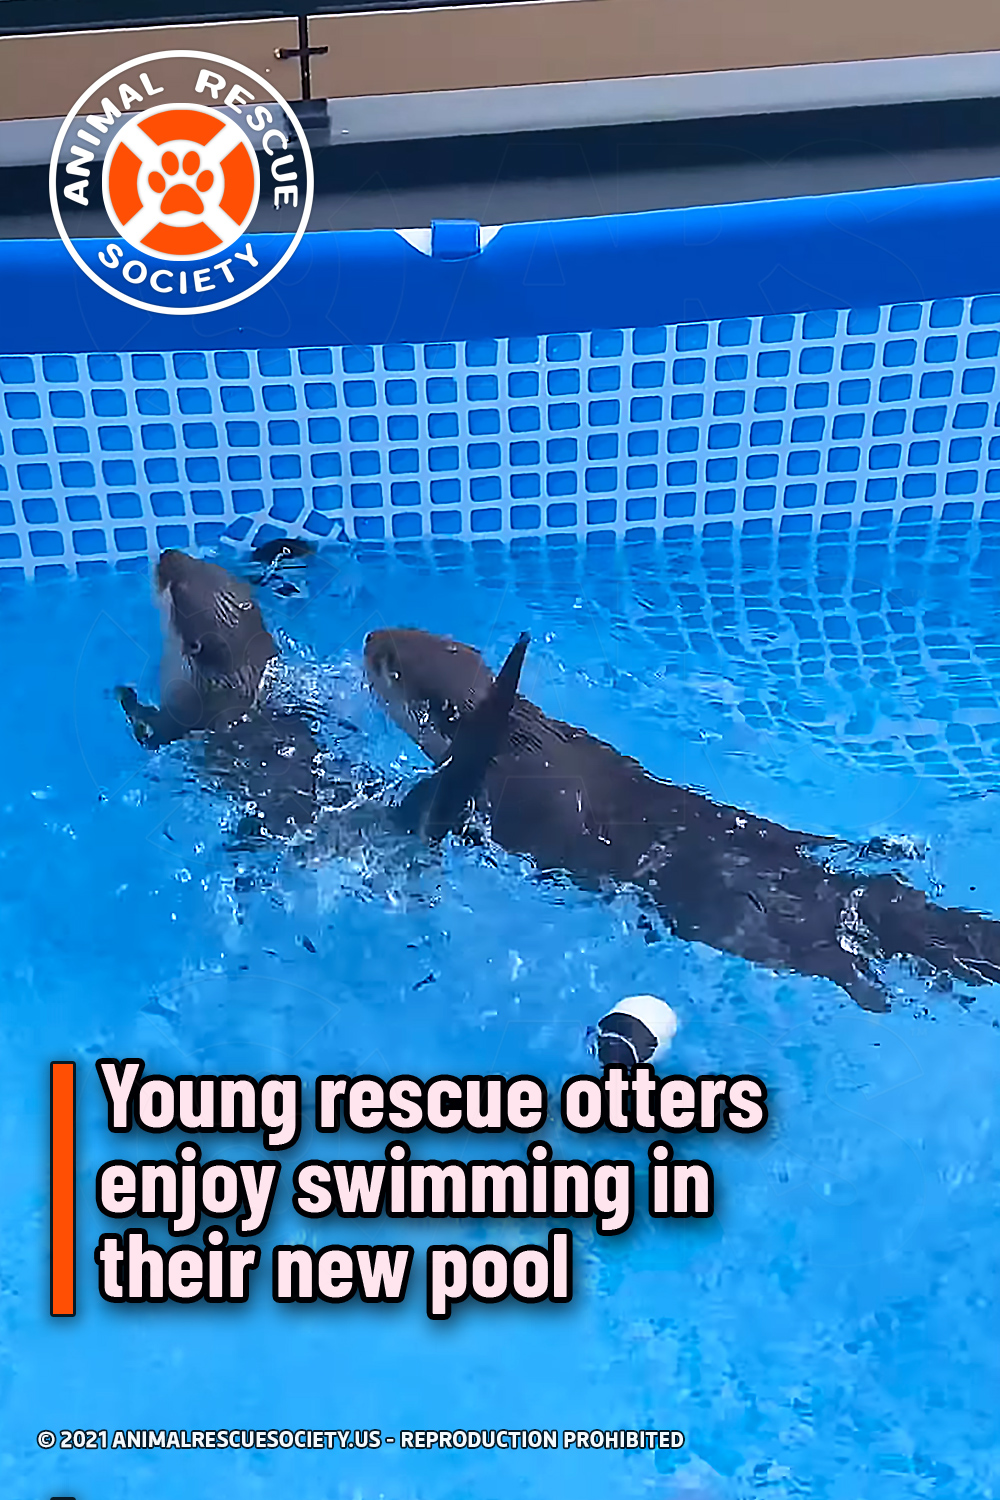 Young rescue otters enjoy swimming in their new pool